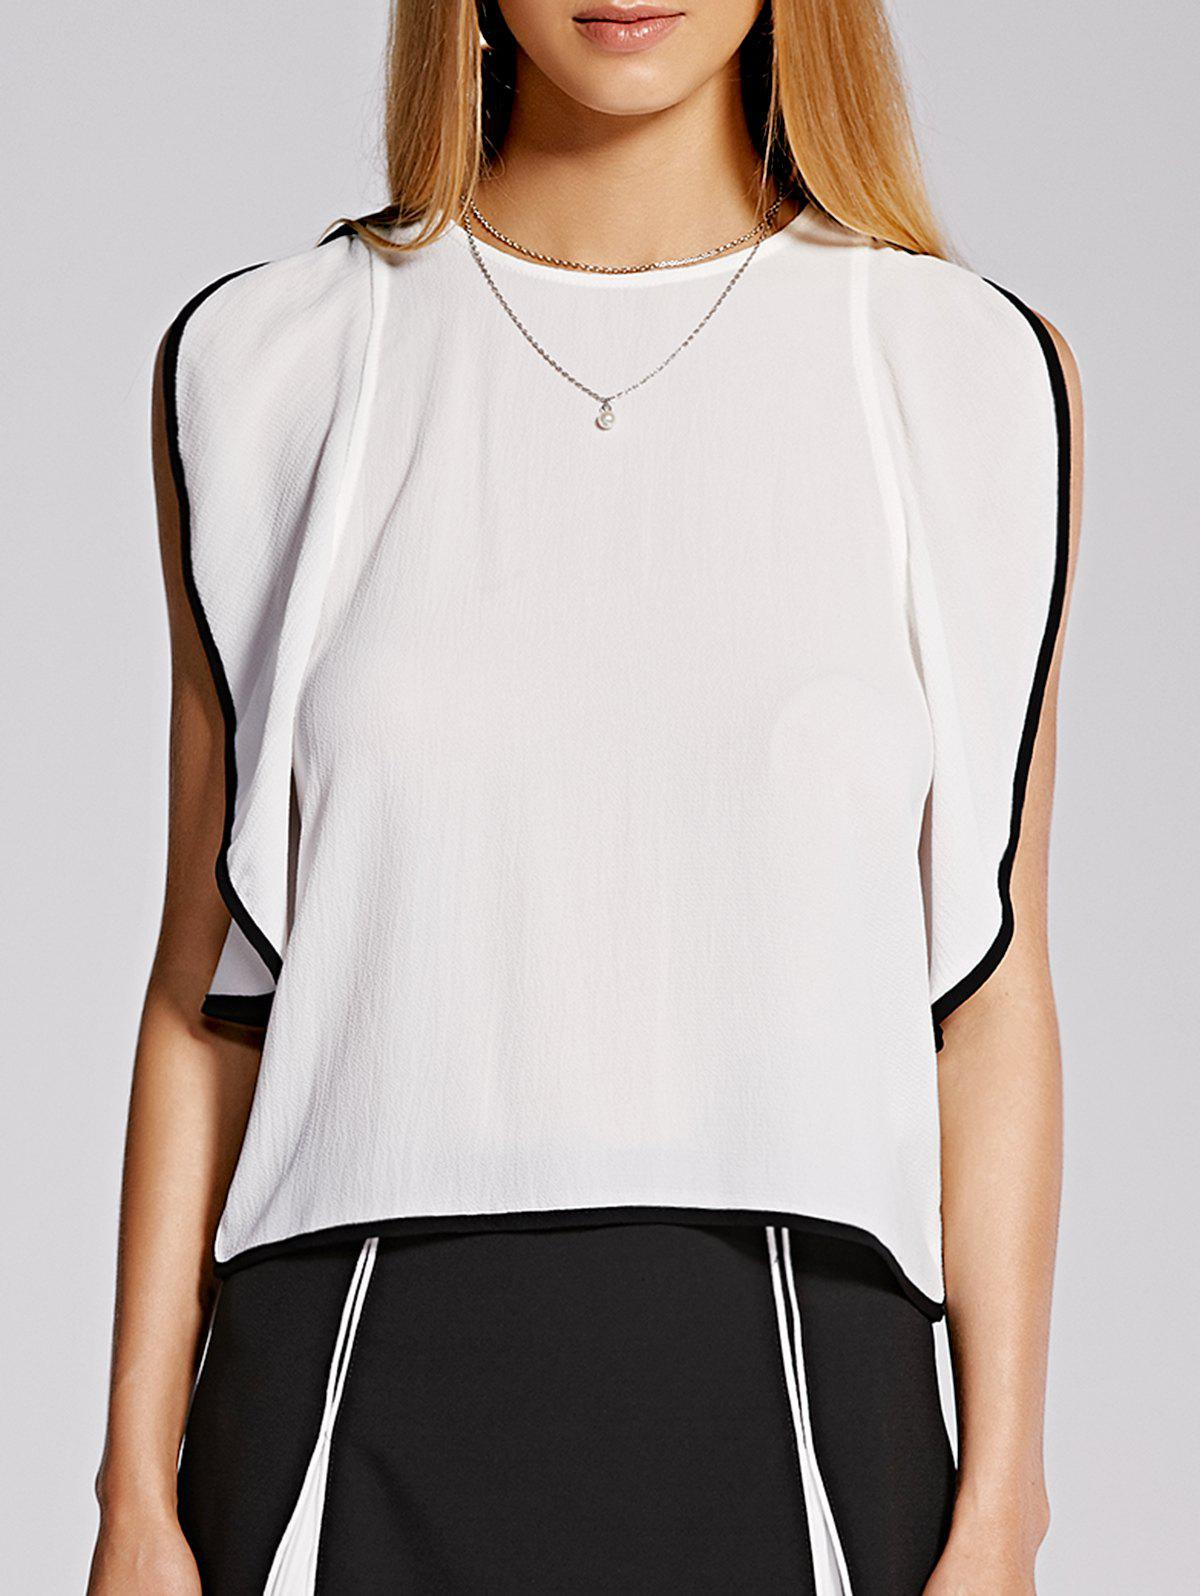 Stylish Flounced Sleeveless Round Neck Women's Blouse - S WHITE